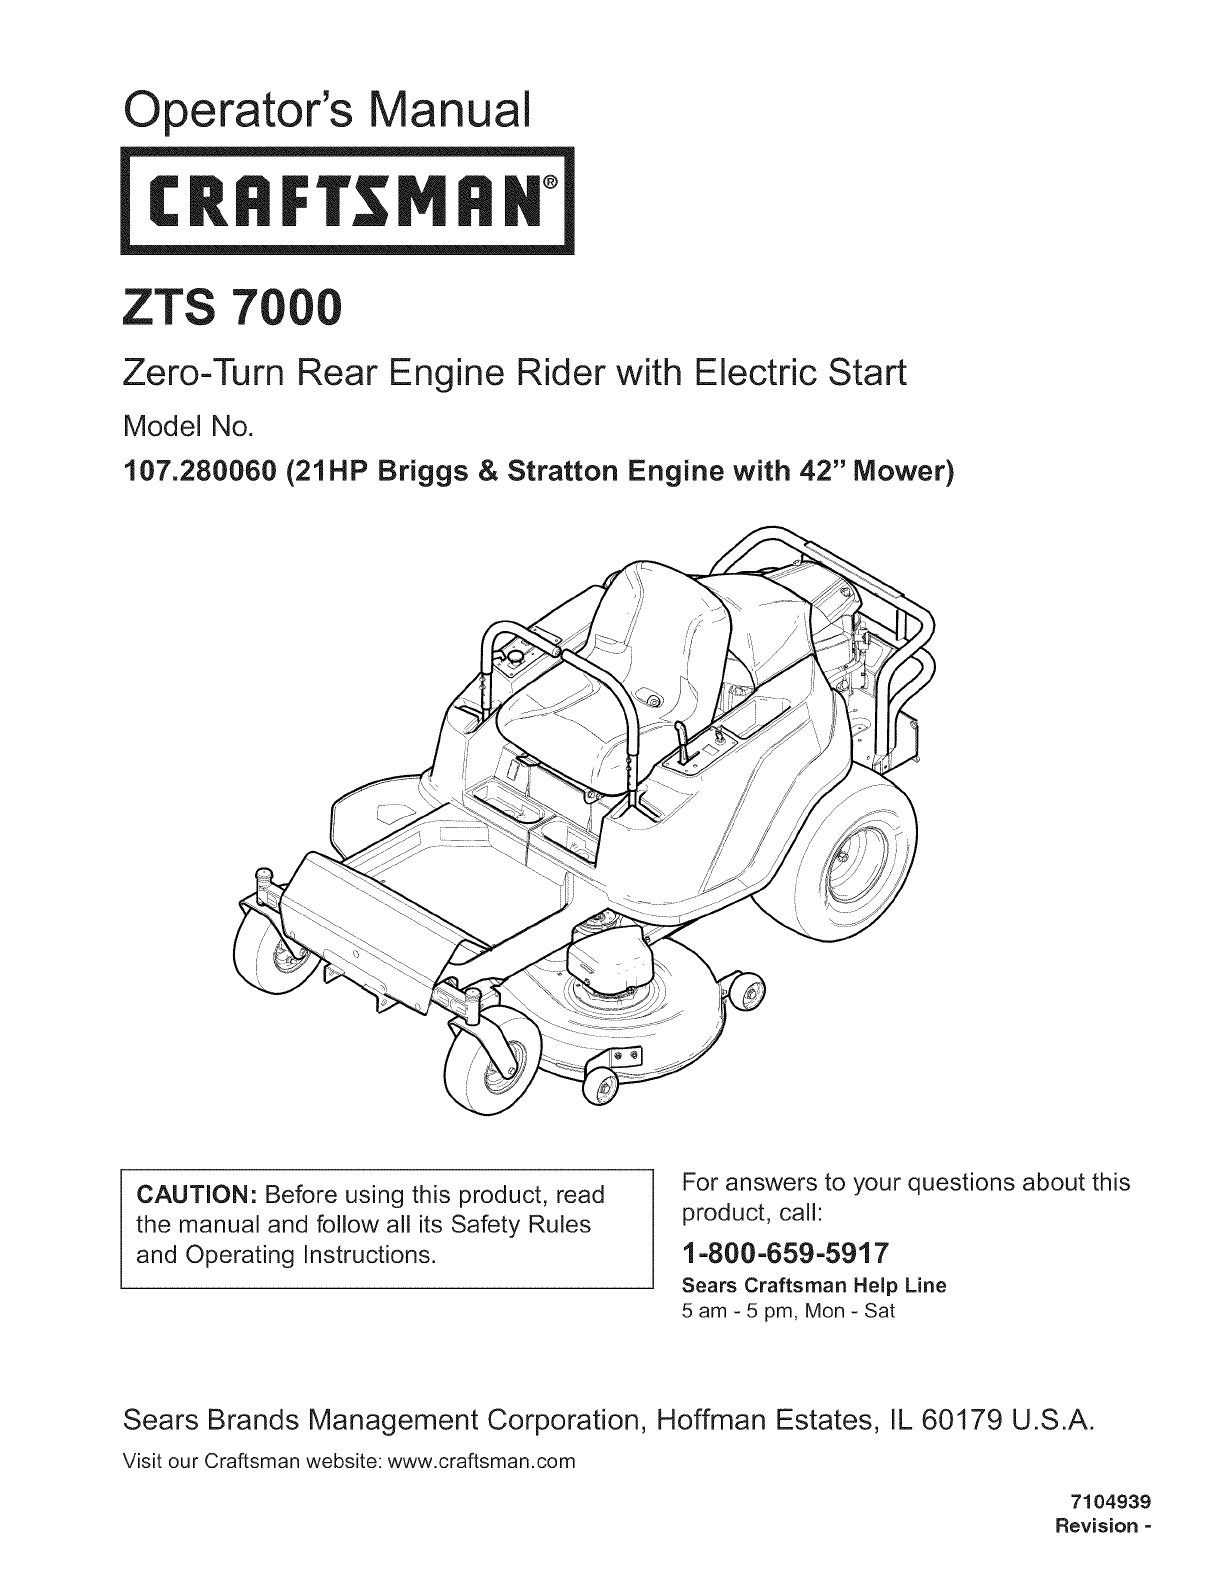 craftsman 107280060 user manual lawn tractor manuals and guides 1101254loperator\u0027s manual